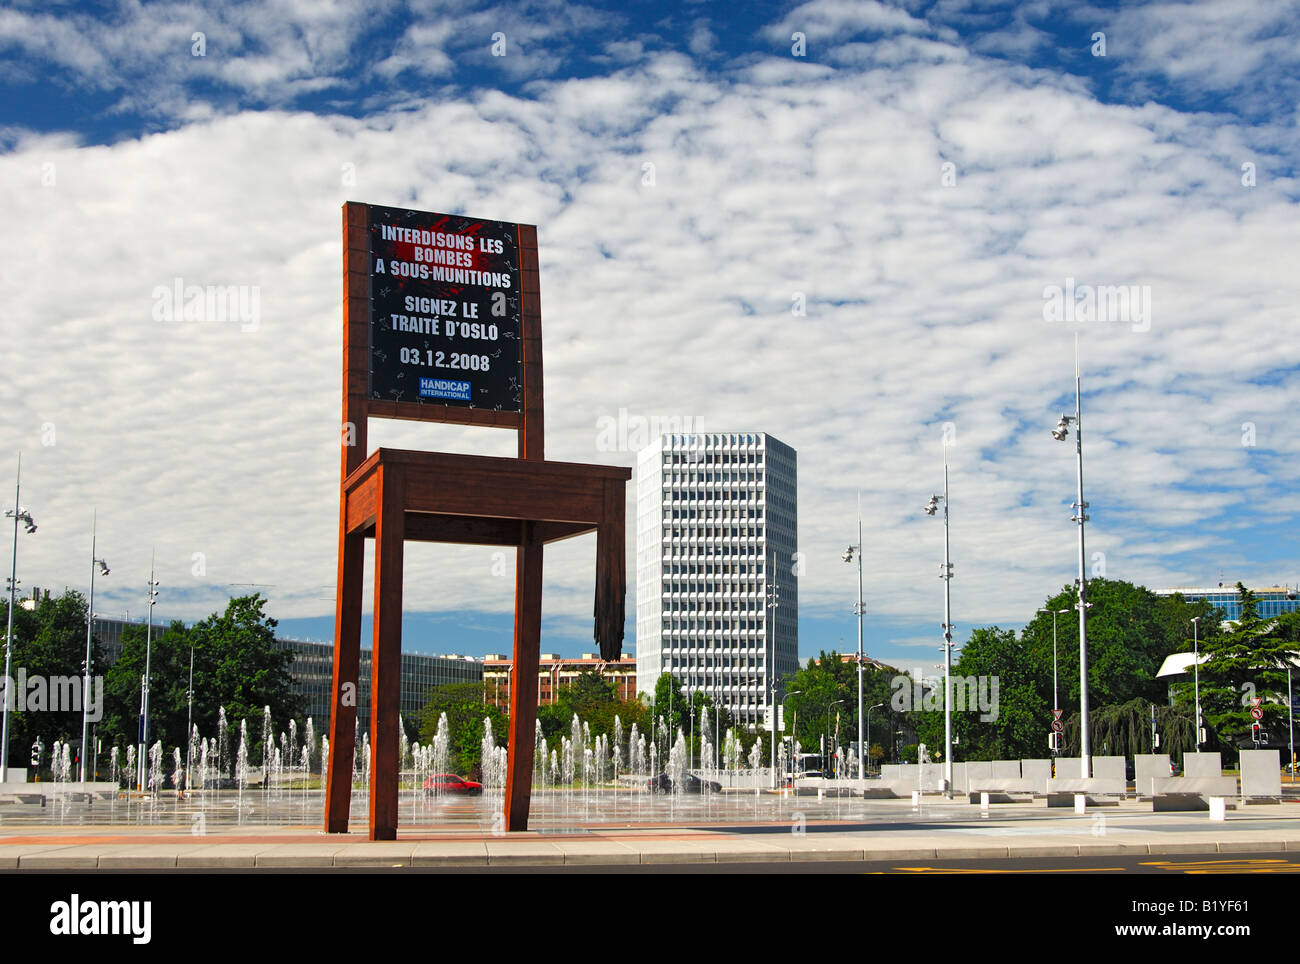 Handicap International demands the signing of the Oslo cluster bomb ban treaty at the Broken Chair memorial, Geneva, - Stock Image